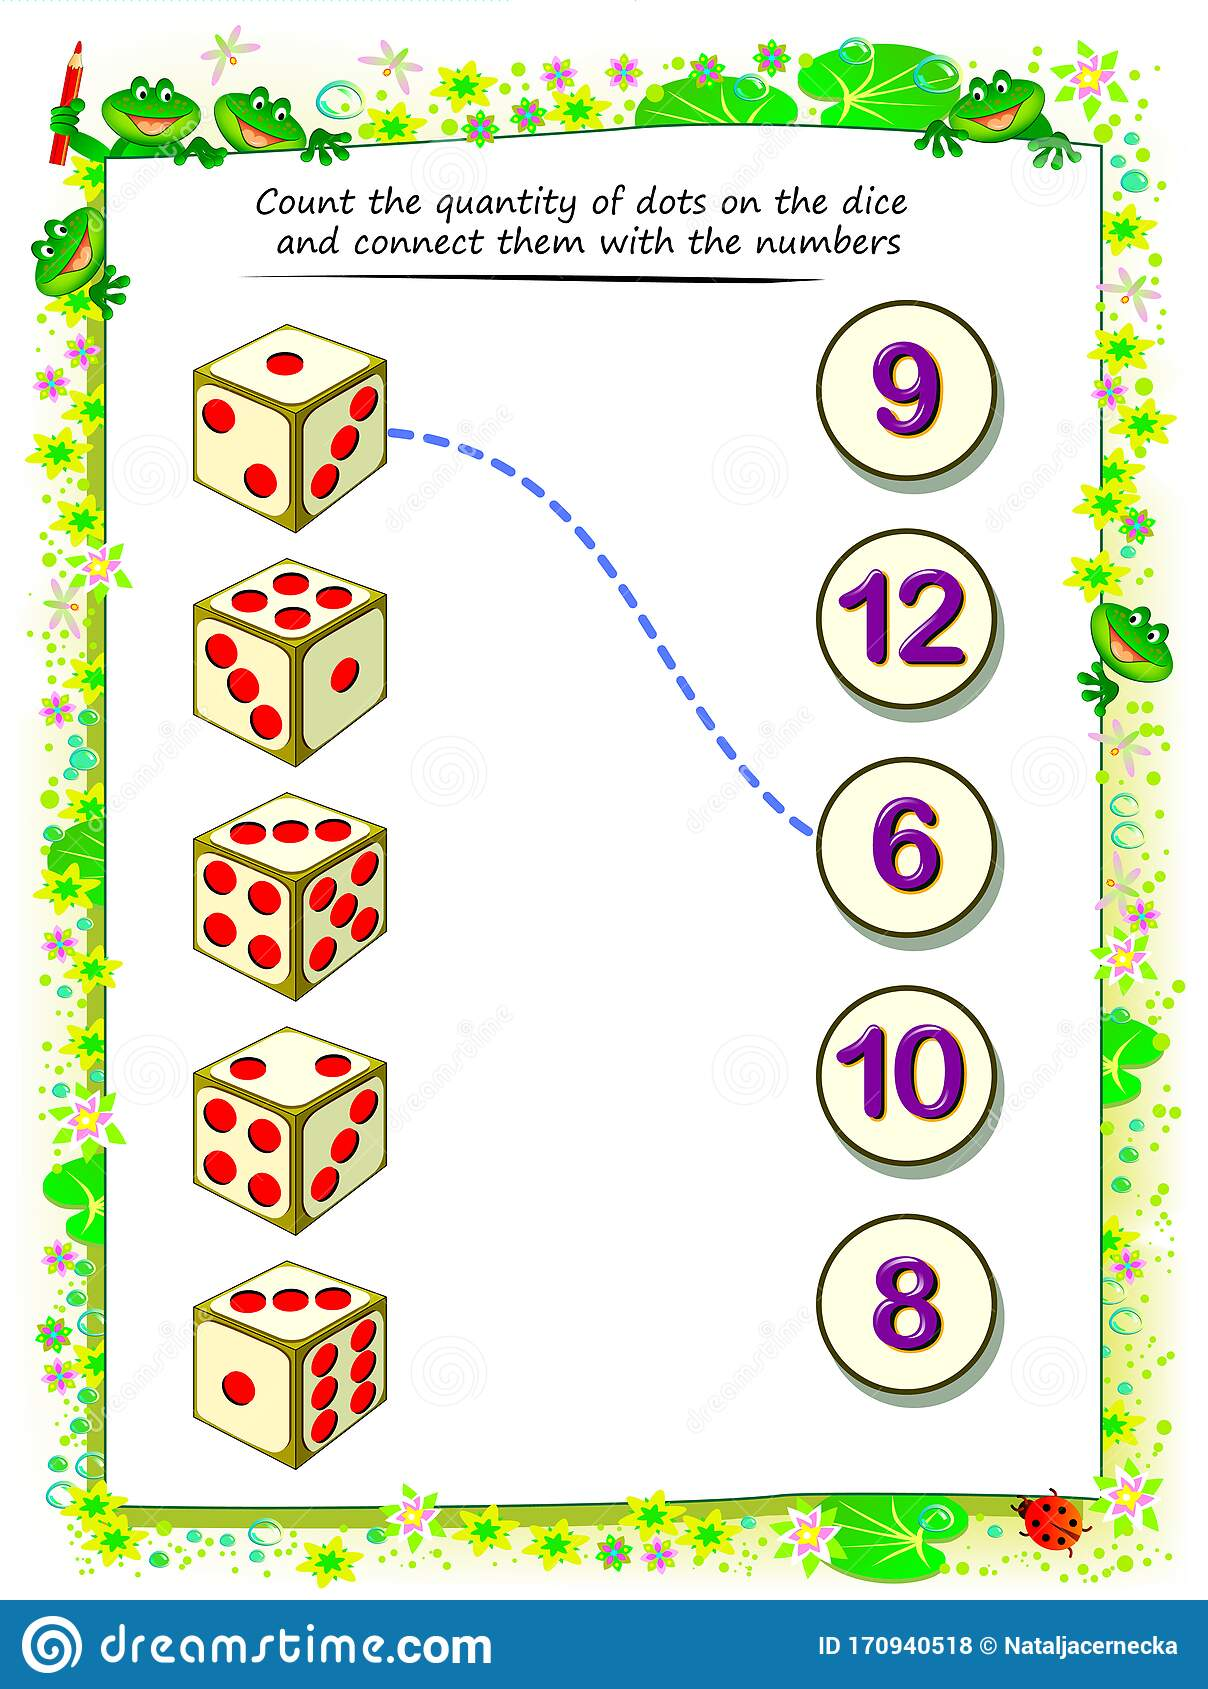 Math Education For Children Count The Quantity Of Dots On